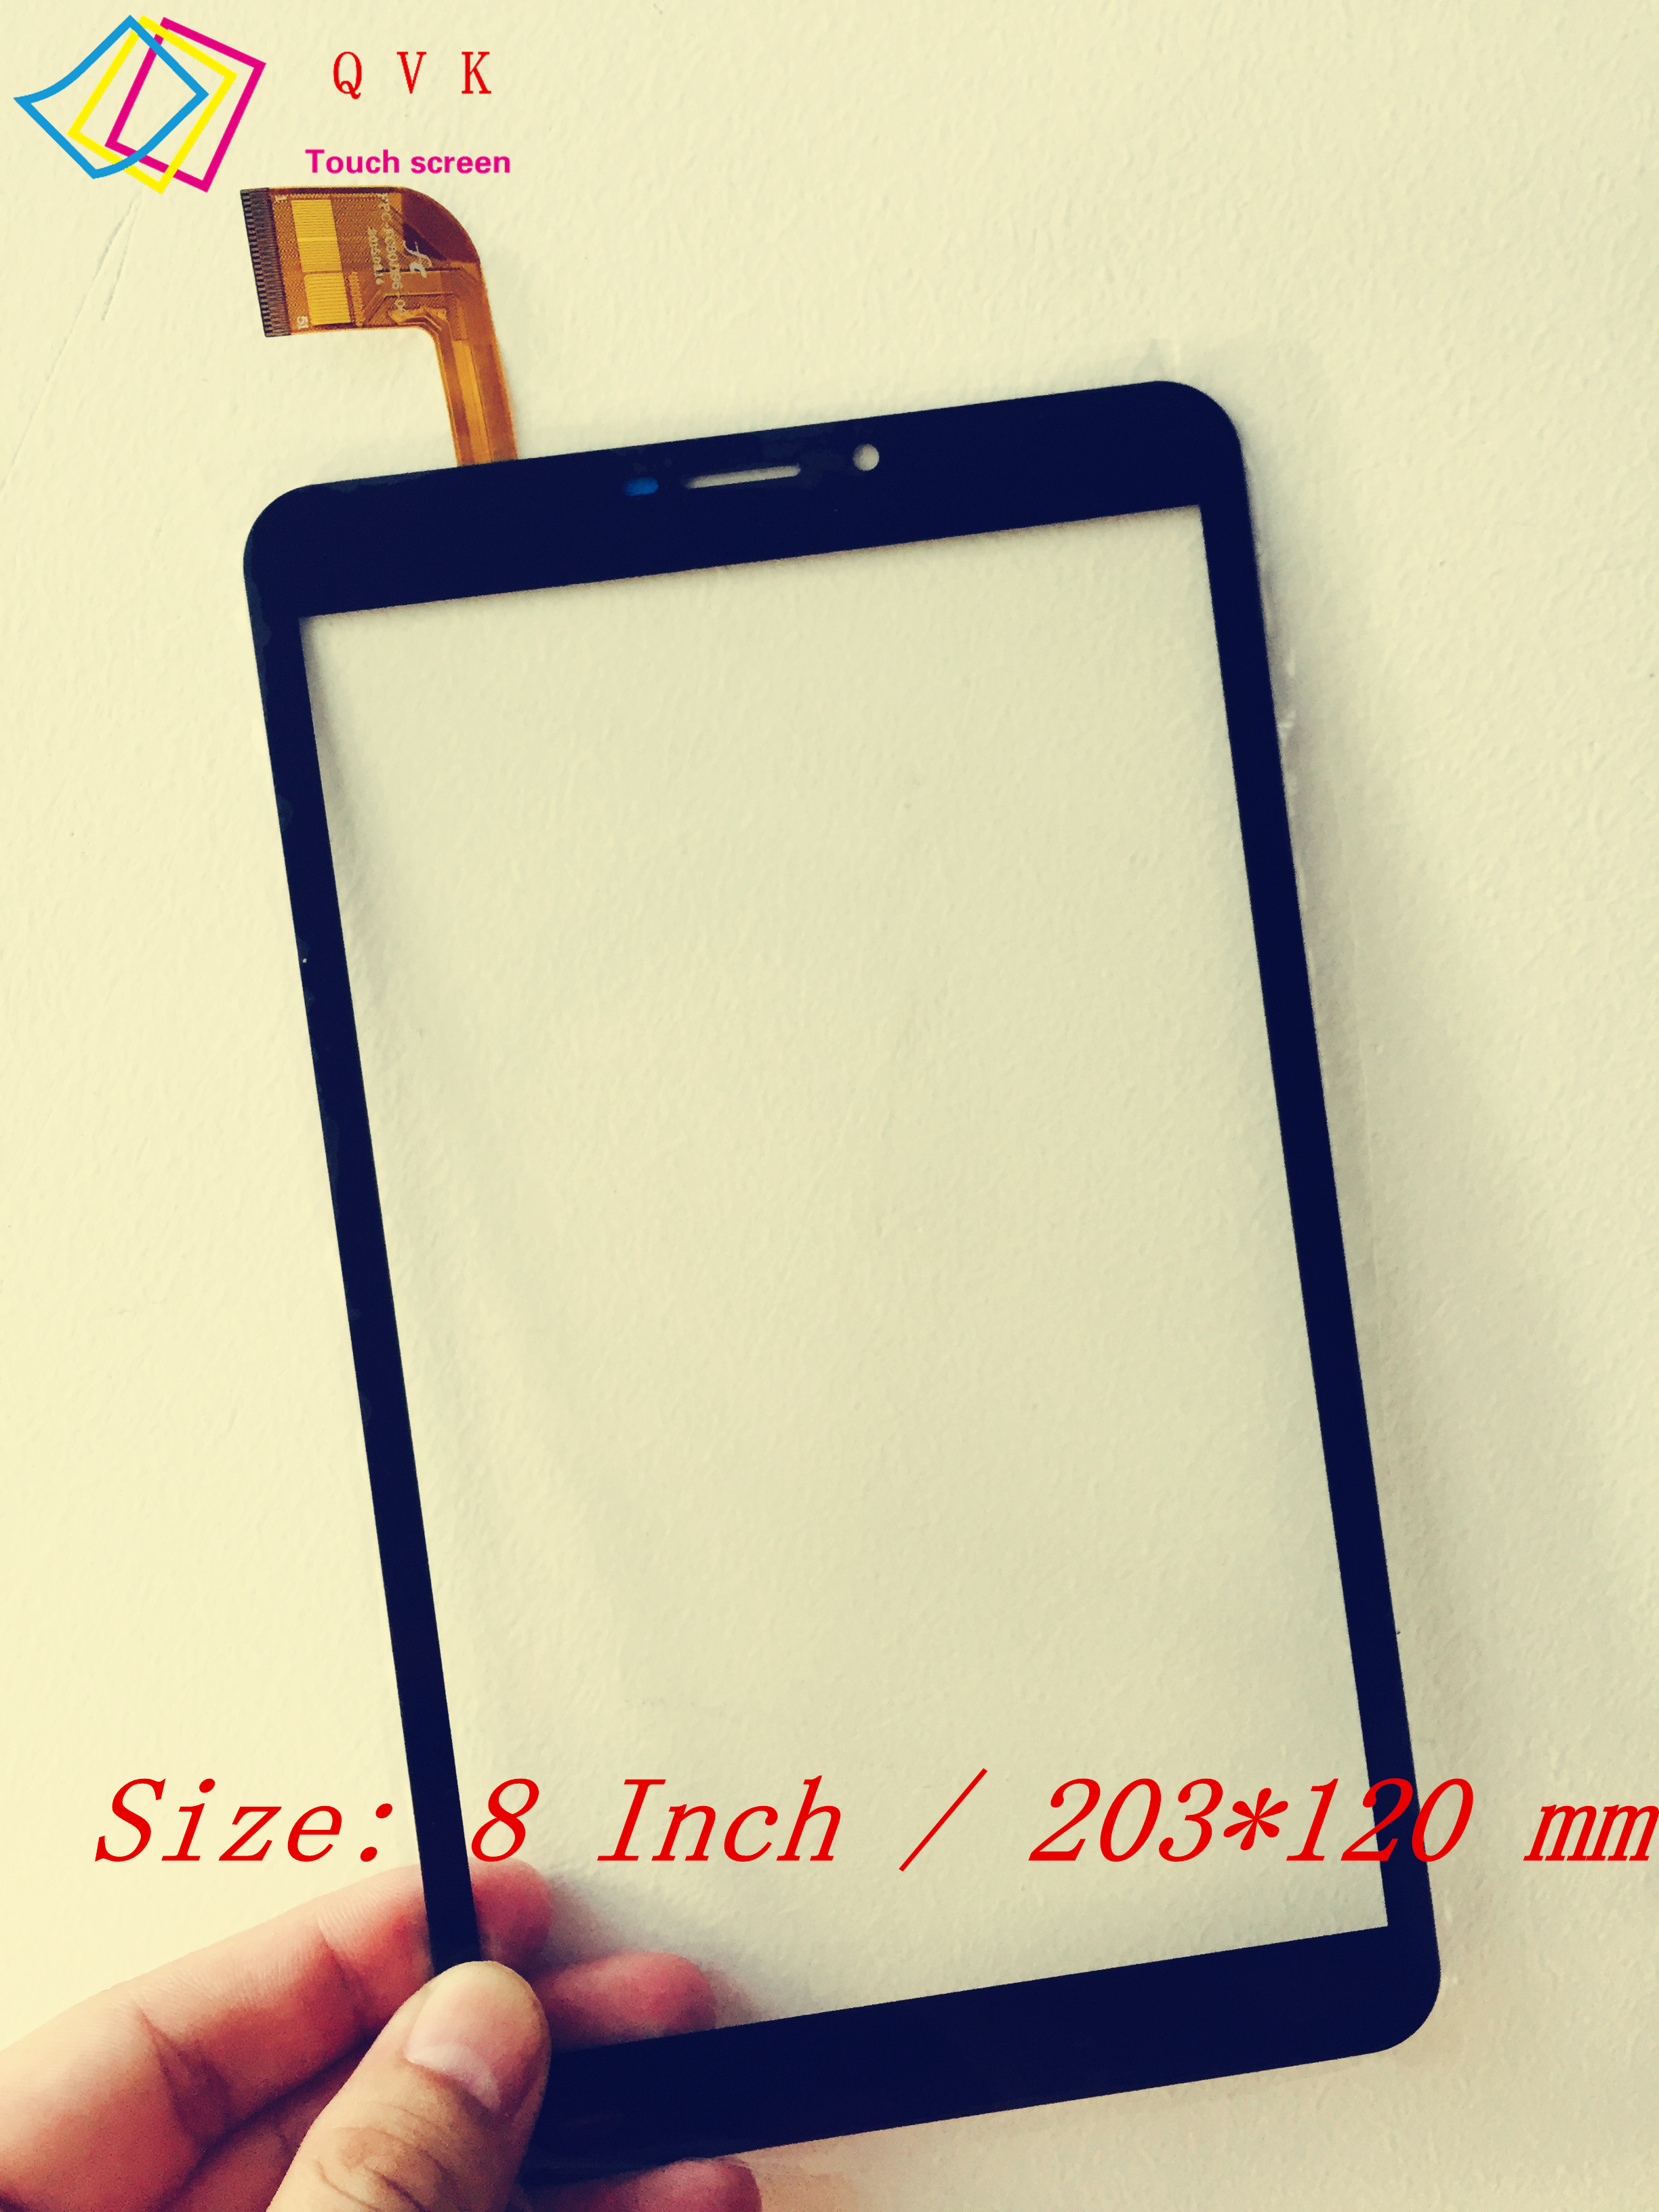 Black 8 Inch for Vonino Pluri Q8 tablet pc capacitive touch screen glass digitizer panel Free shipping original new 8 inch ntp080cm112104 capacitive touch screen digitizer panel for tablet pc touch screen panels free shipping